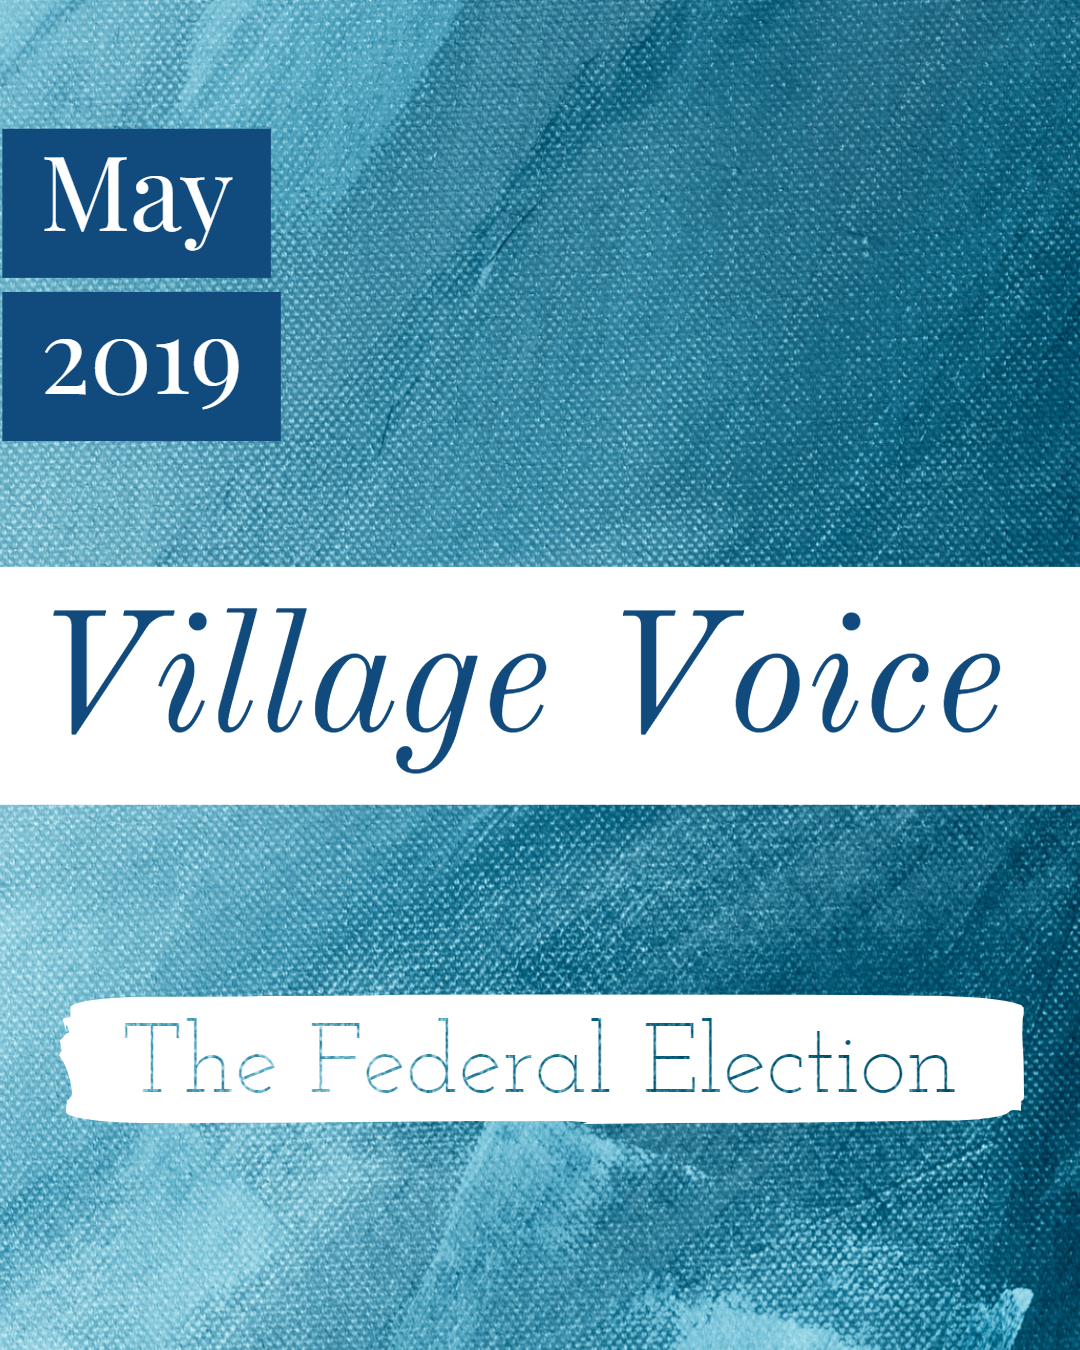 Village Voice: May 2019